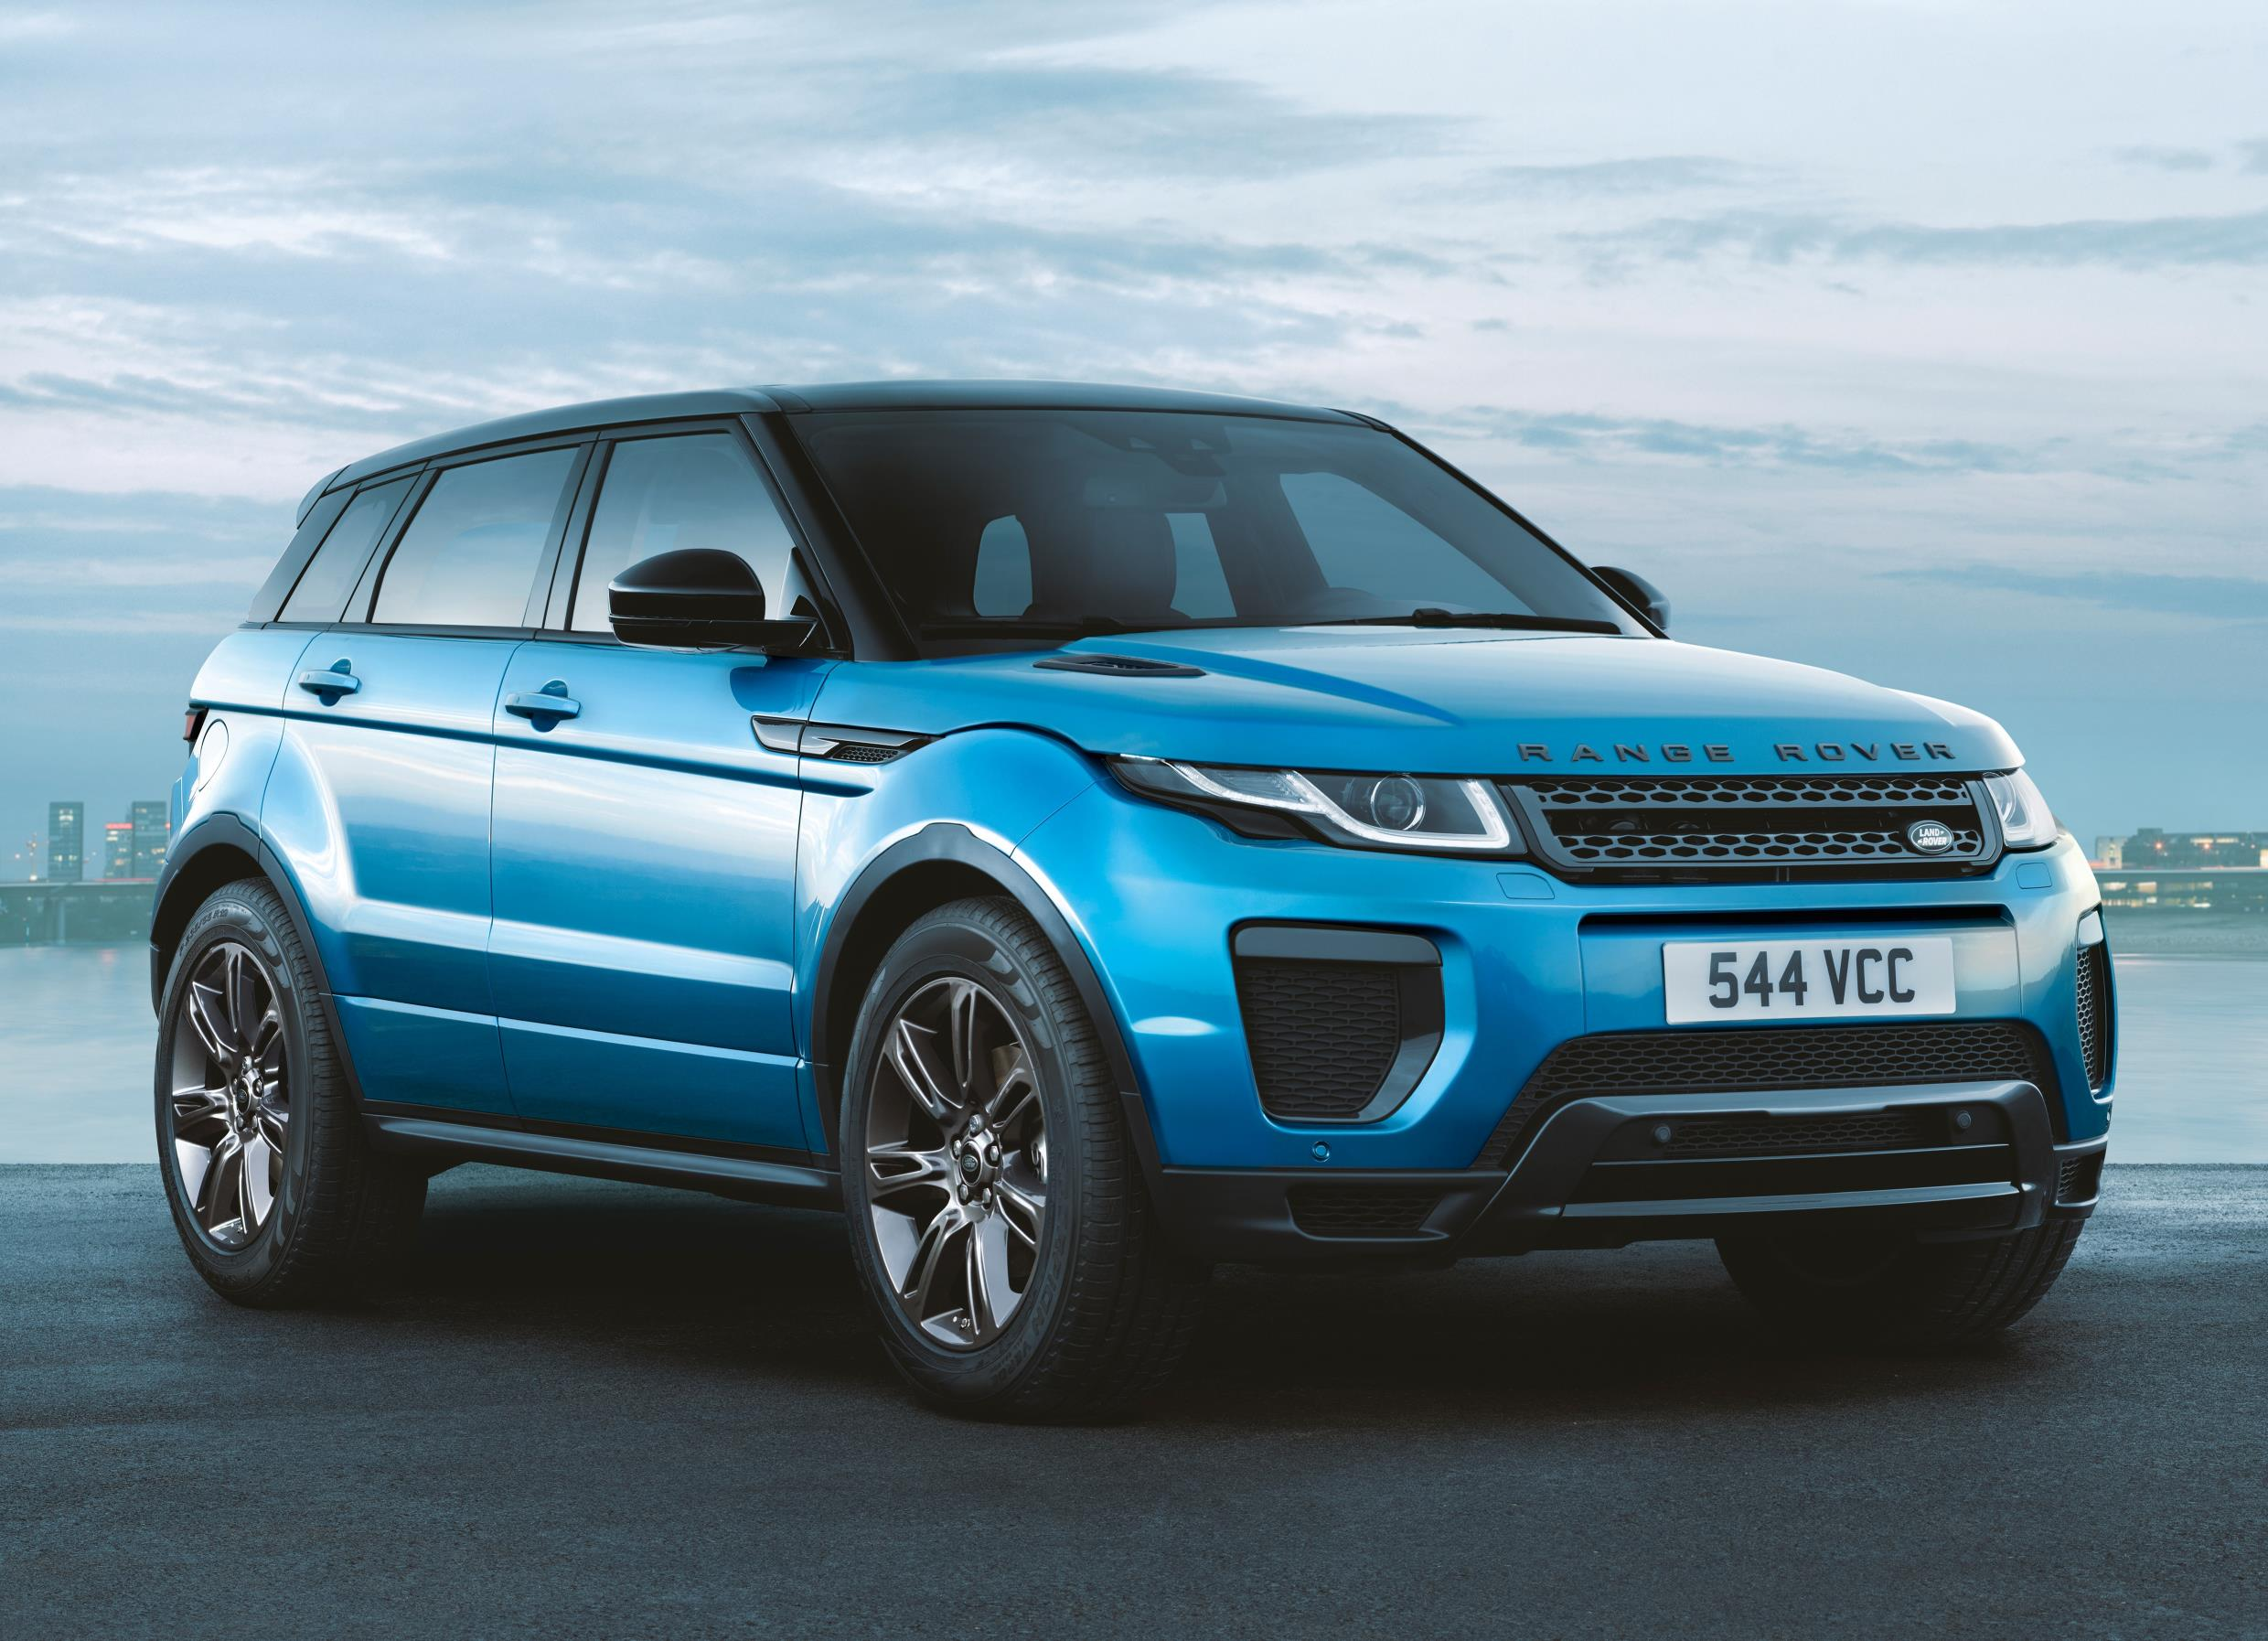 LAND ROVER RANGE ROVER EVOQUE LANDMARK EDITION myAutoWorld